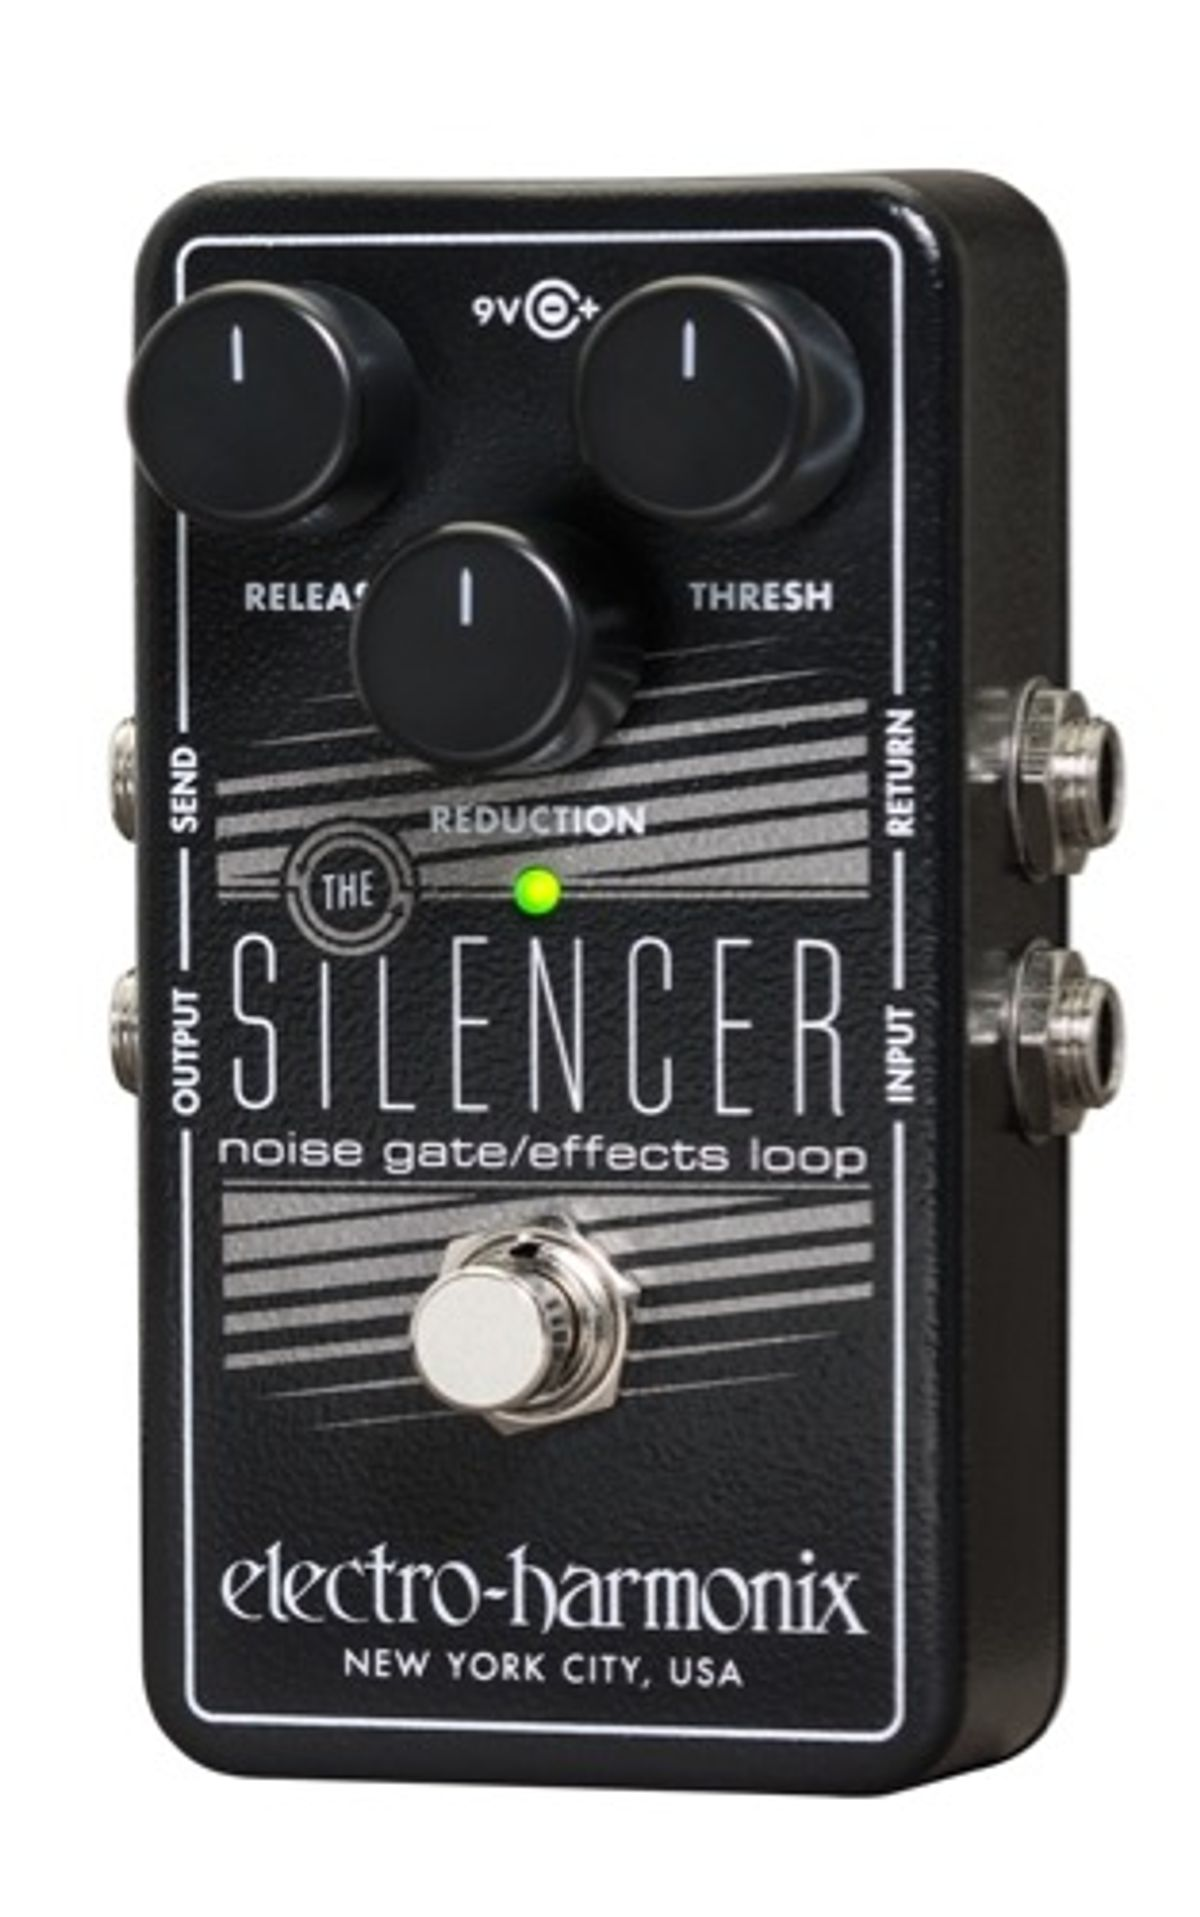 EHX Announces the Silencer Noise Gate and 22500 Dual Stereo Looper